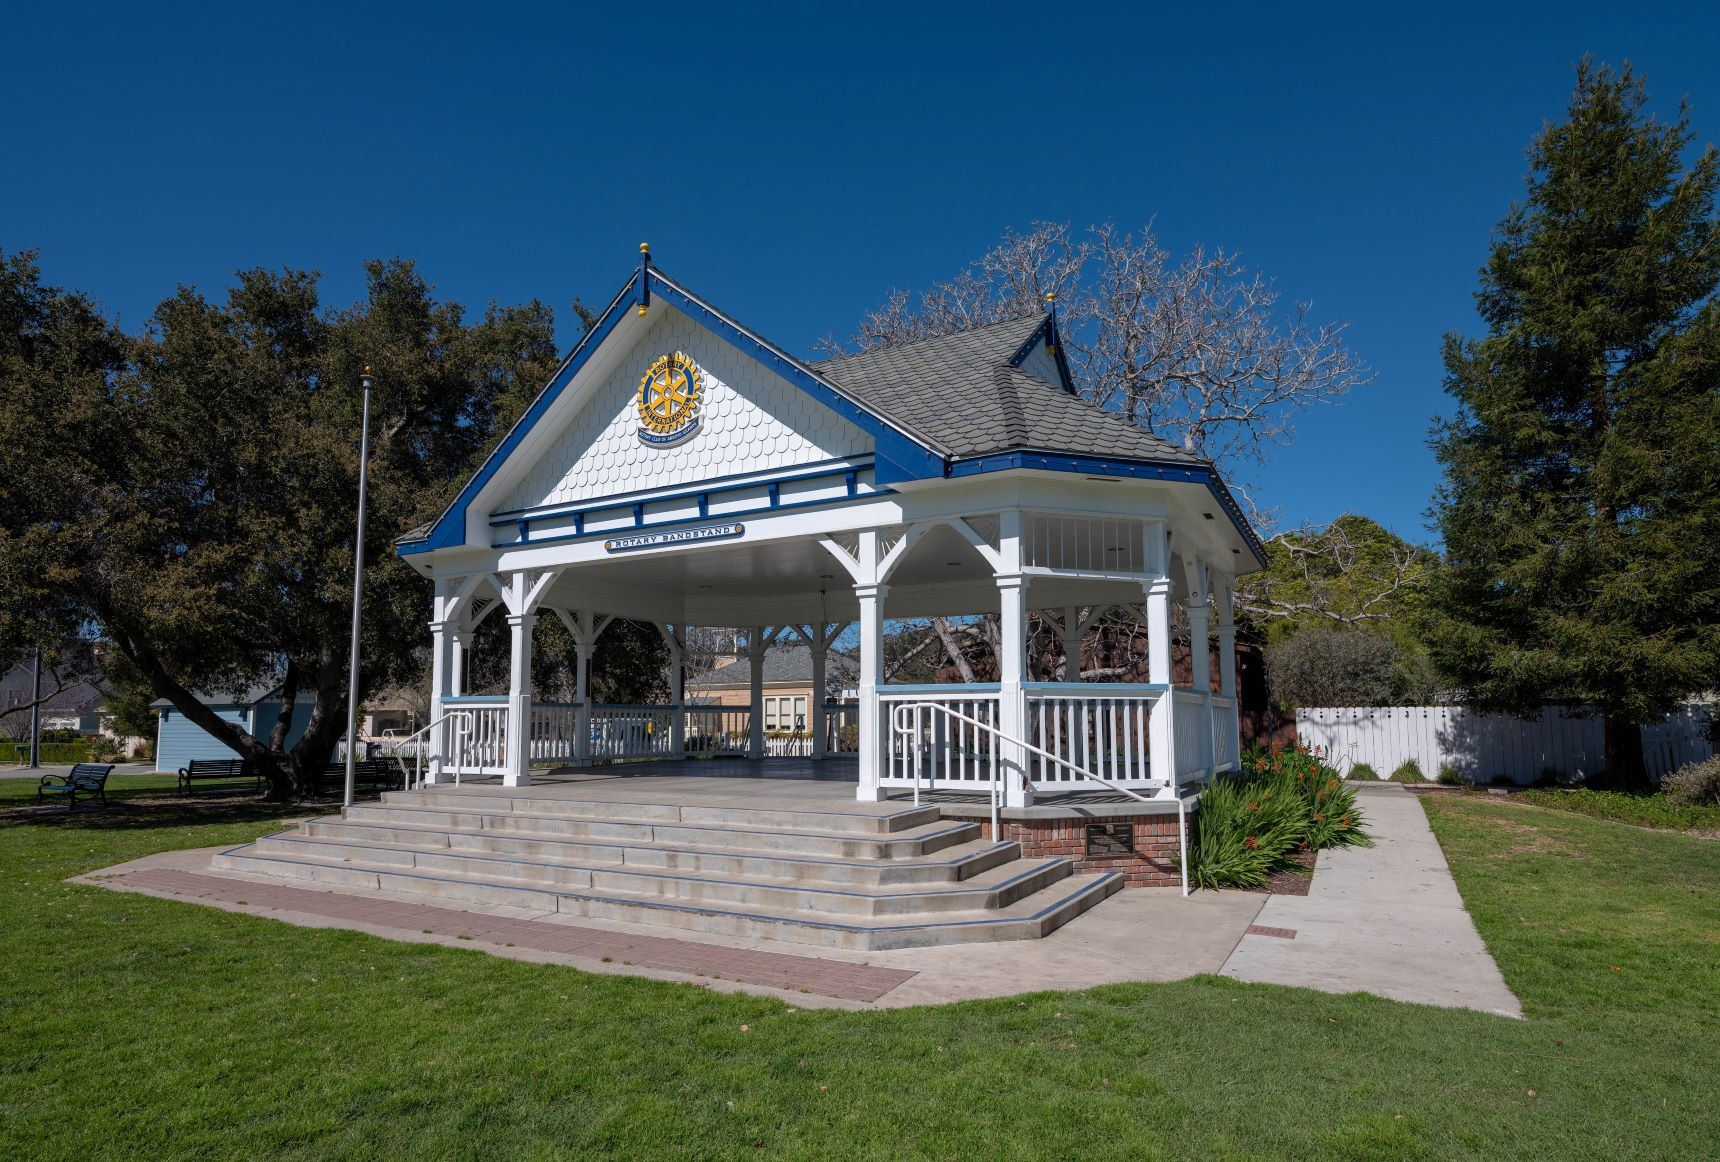 Rotary Bandstand